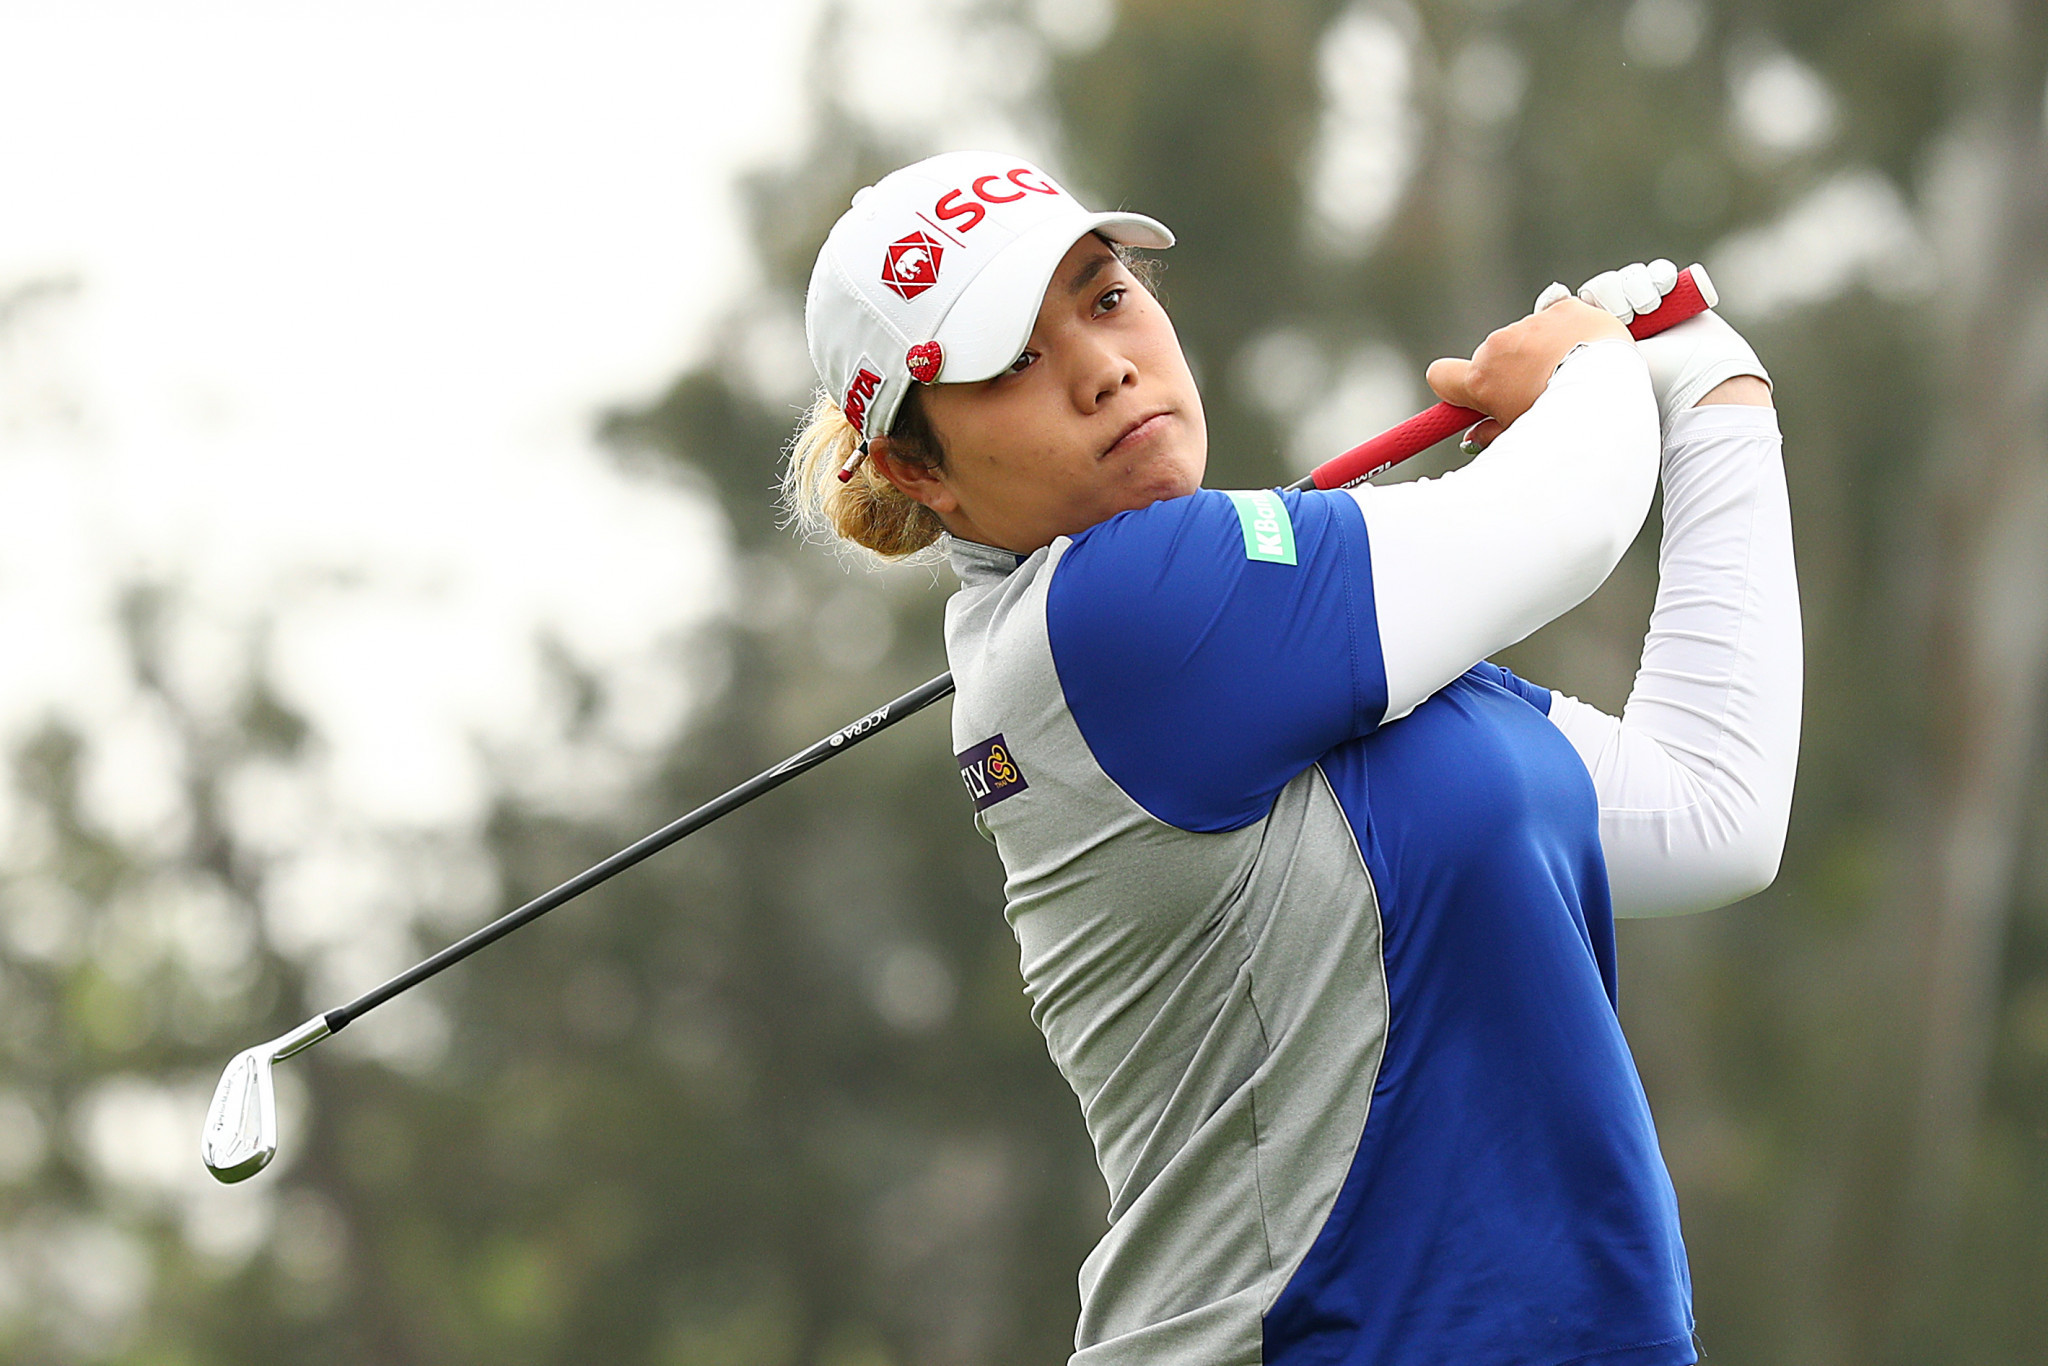 Defending champion Ariya Jutanugarn of Thailand will be among players chasing the record $1 million prize ©Getty Images